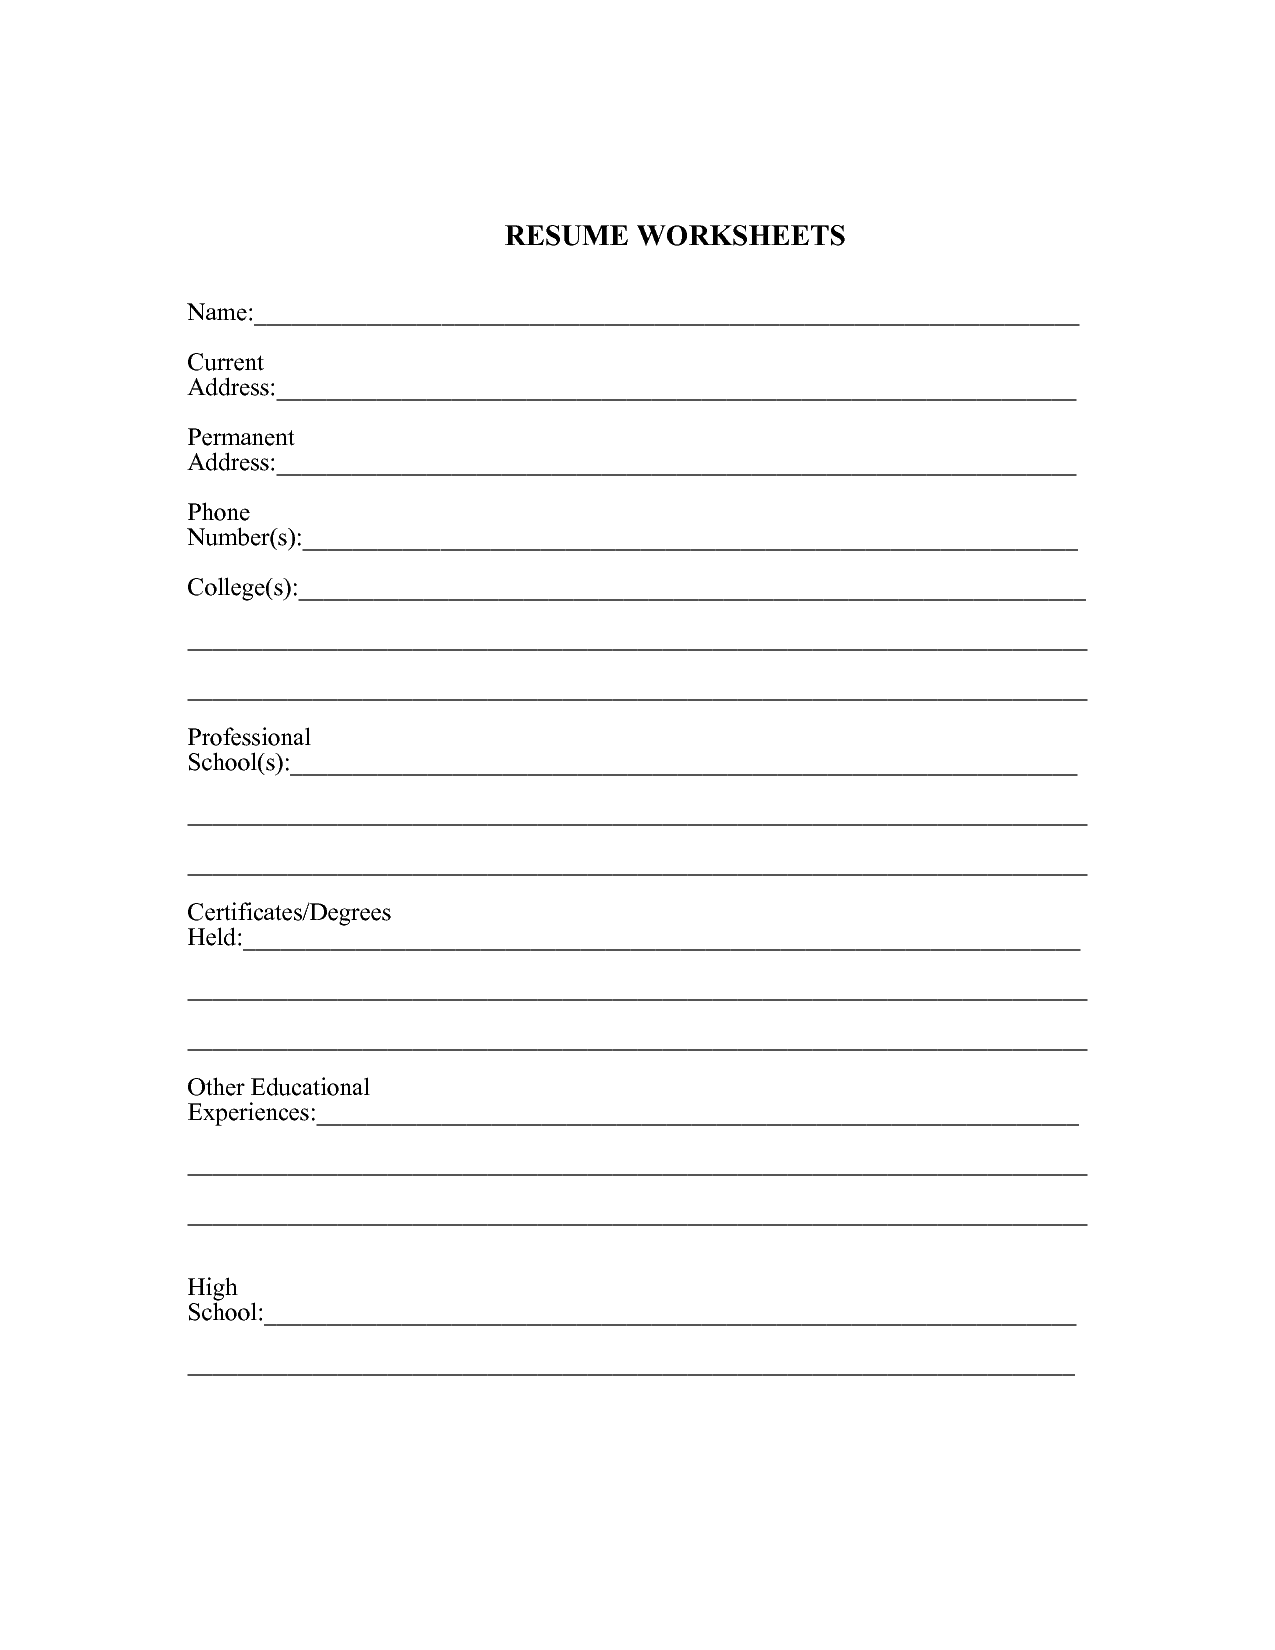 Worksheet Resume Worksheet For High School Students